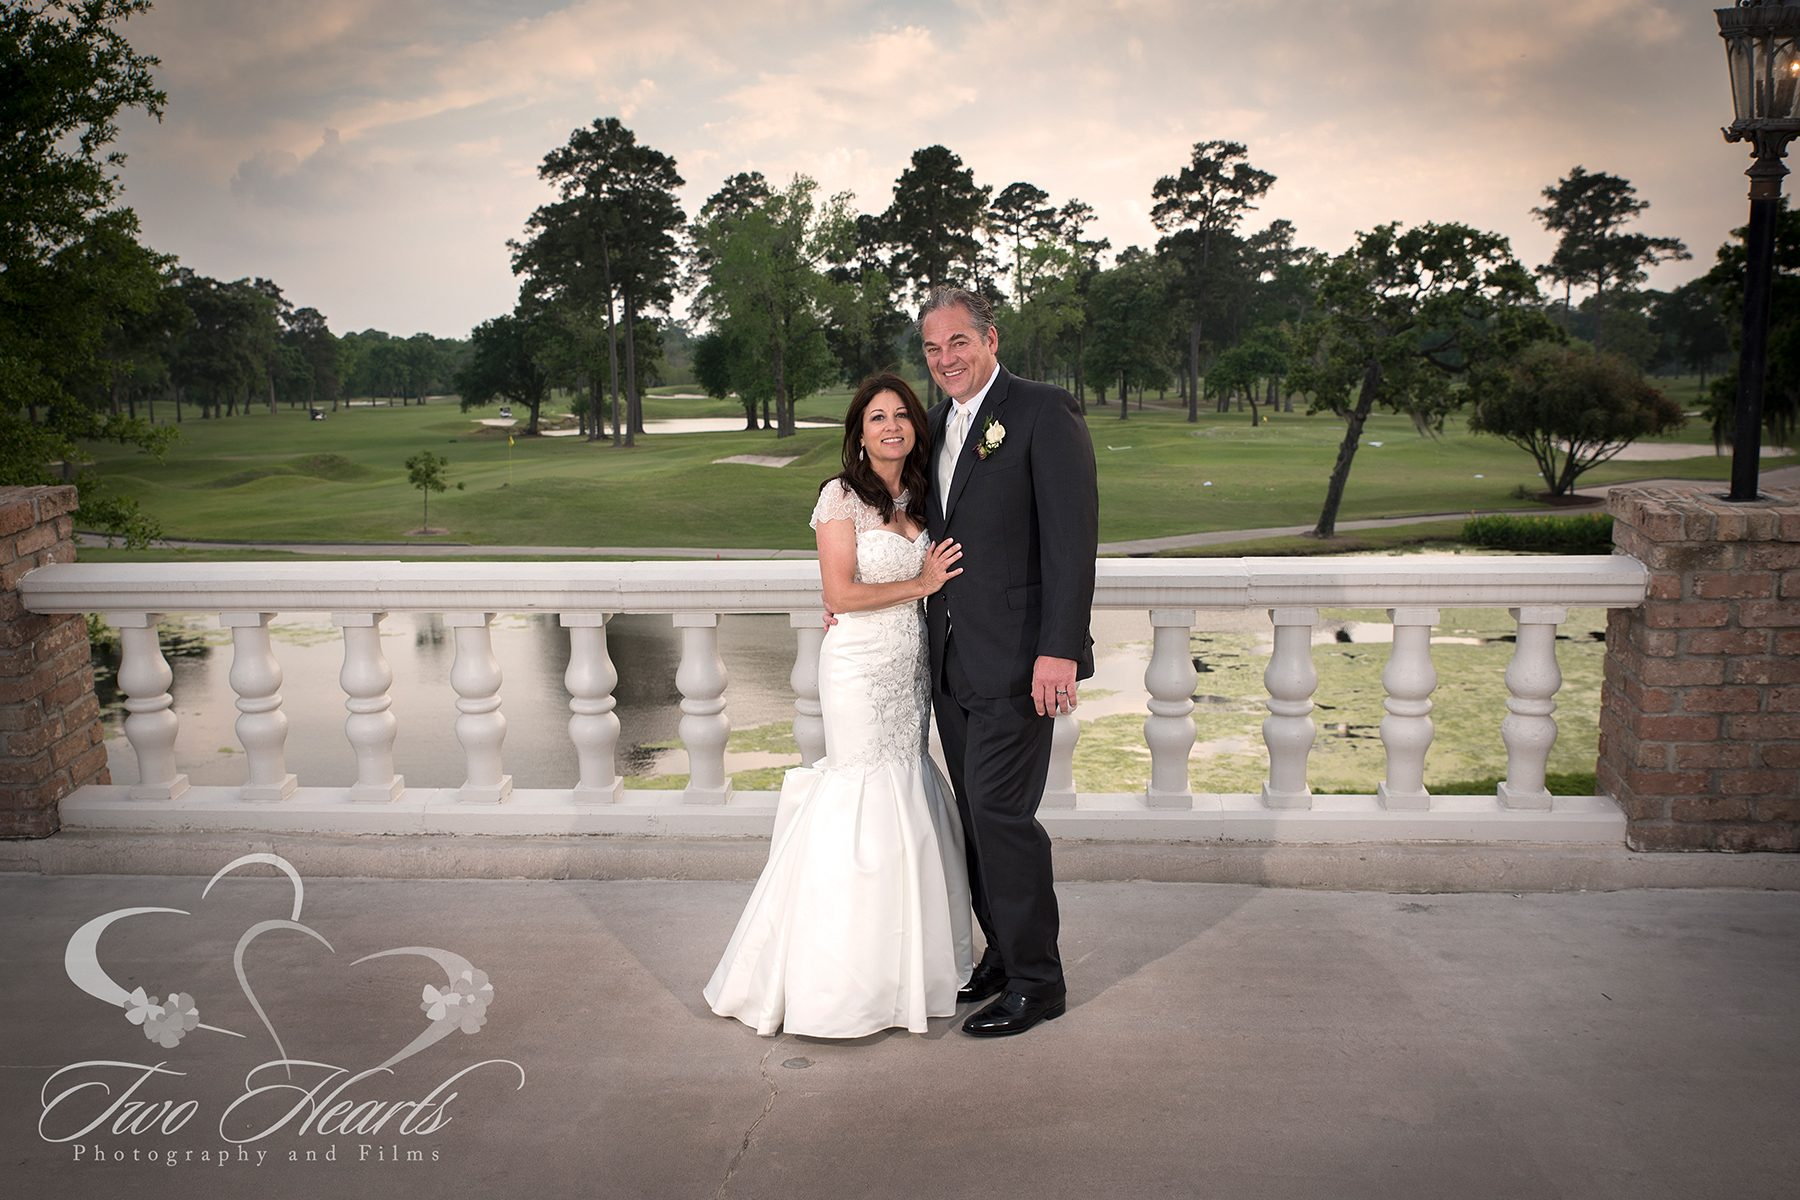 Kyle and Susan - Wedding Photography